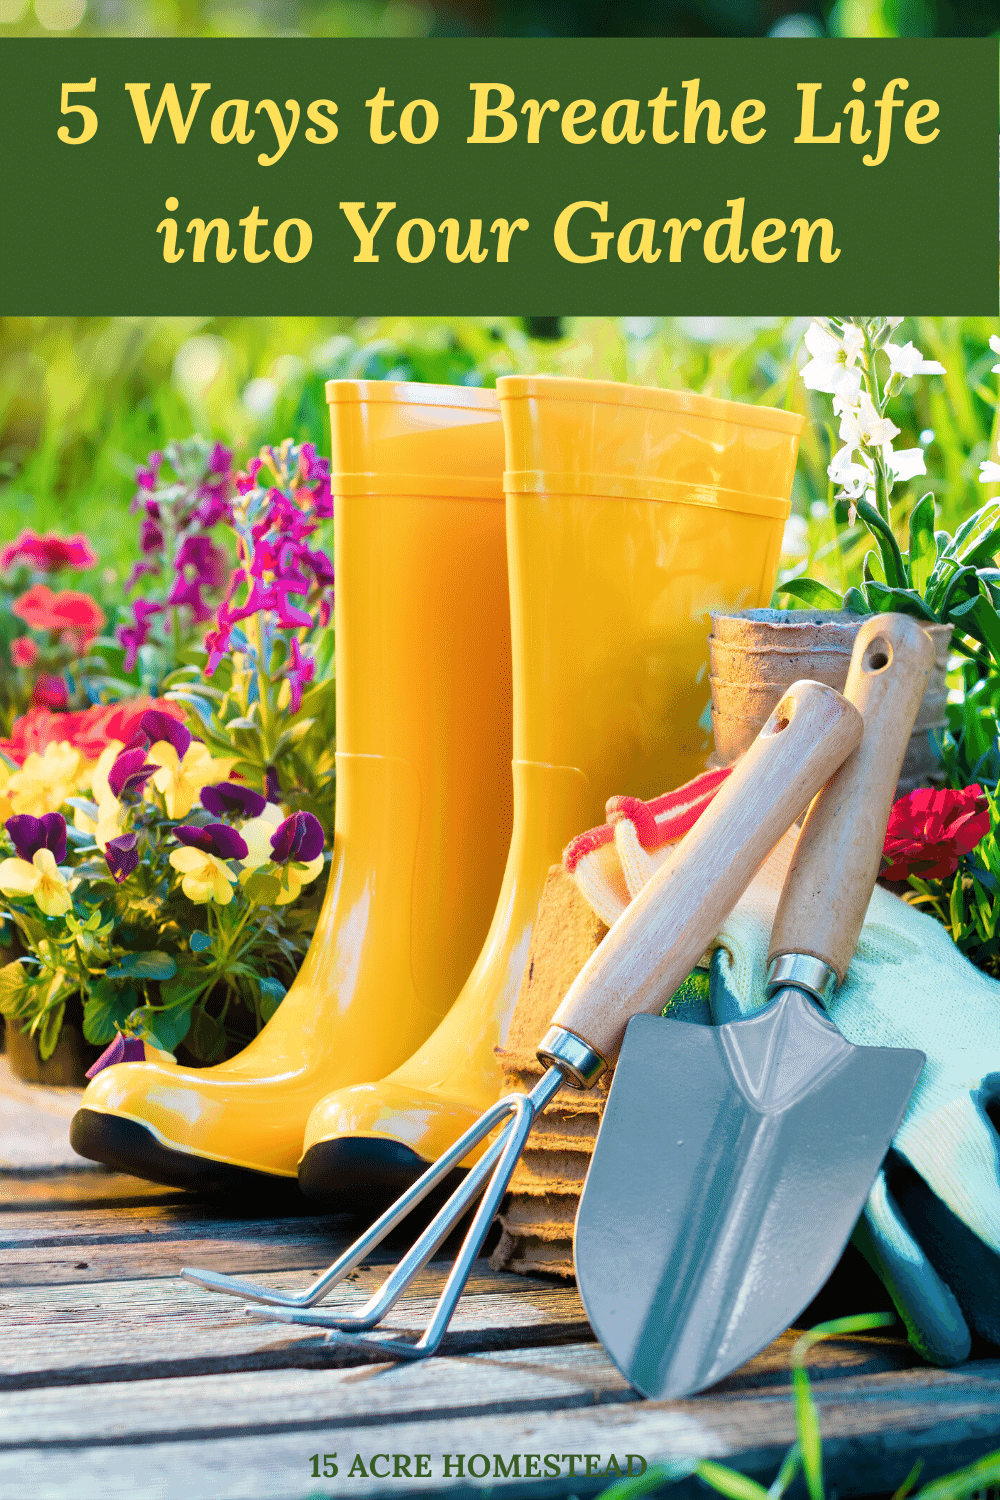 Breath some new life in your garden following the tips in this post and turn your garden into the garden of your dreams.